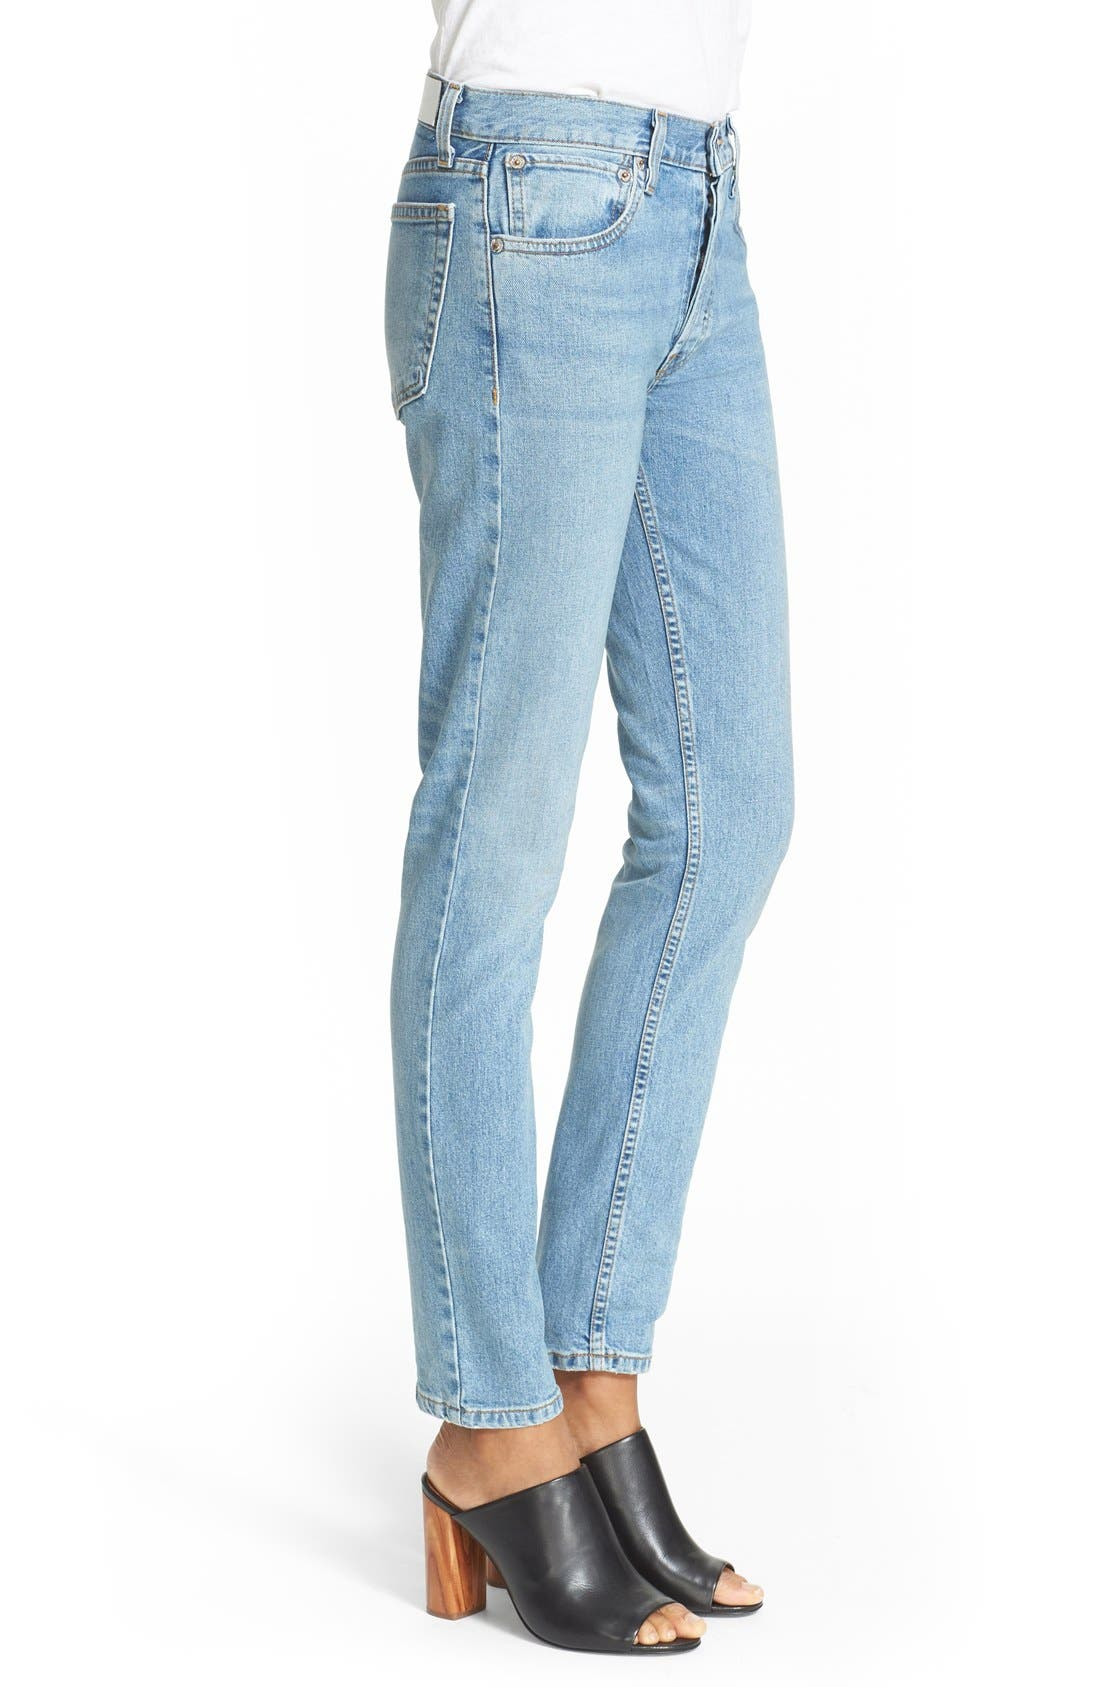 Originals High Waist Straight Skinny Stretch Jeans,                             Alternate thumbnail 5, color,                             400